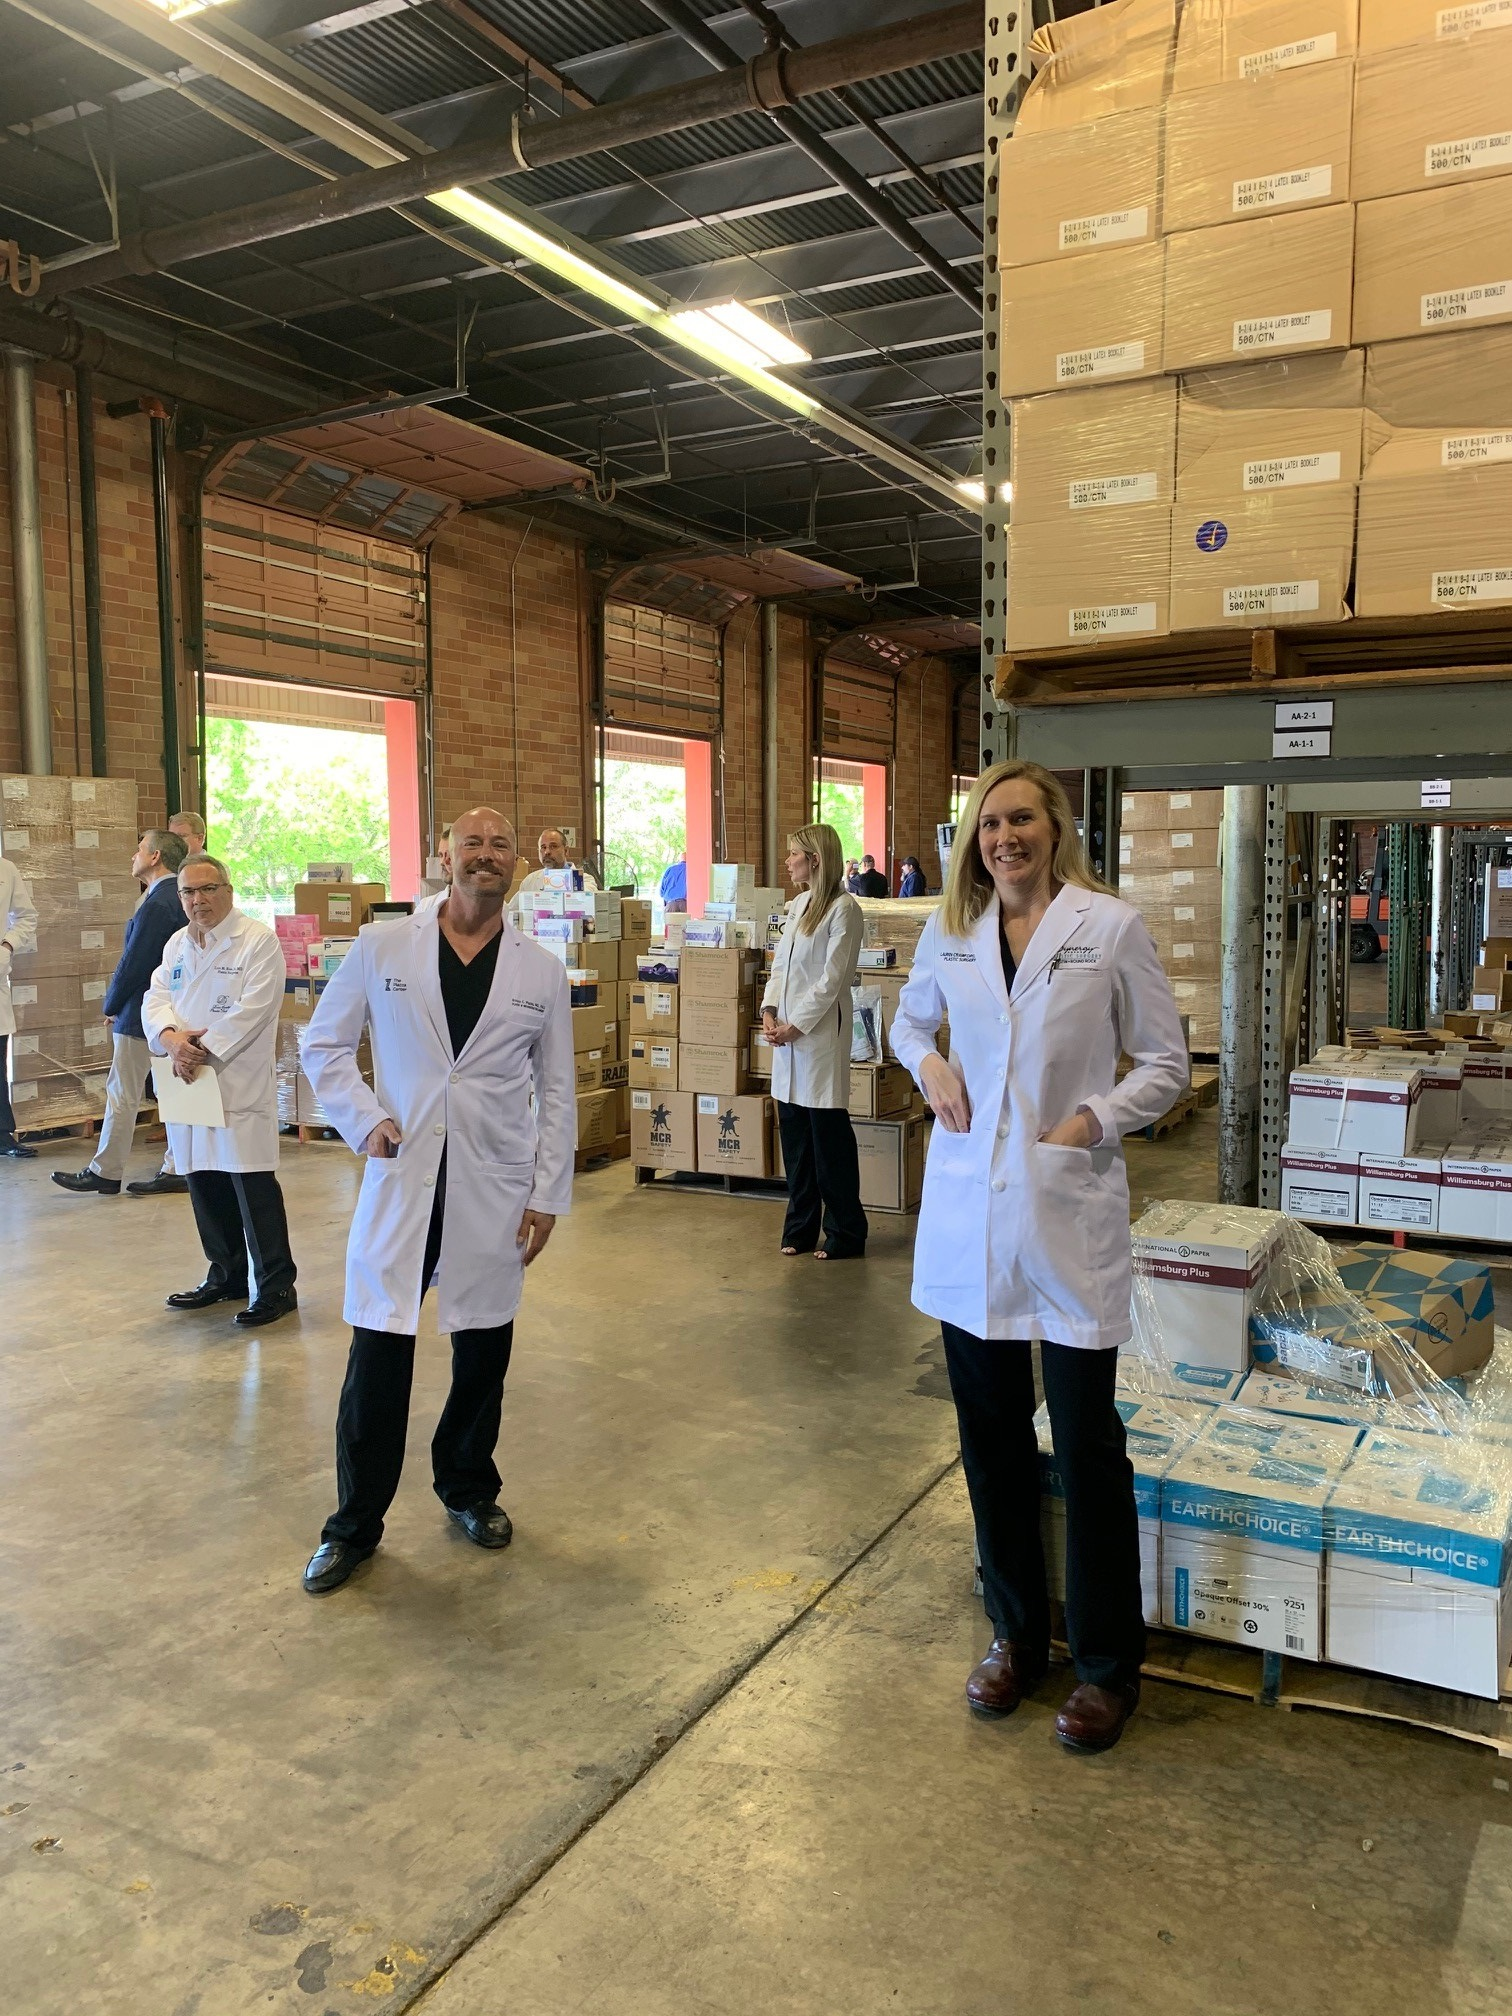 Dr. Piazza in warehouse filled with boxes